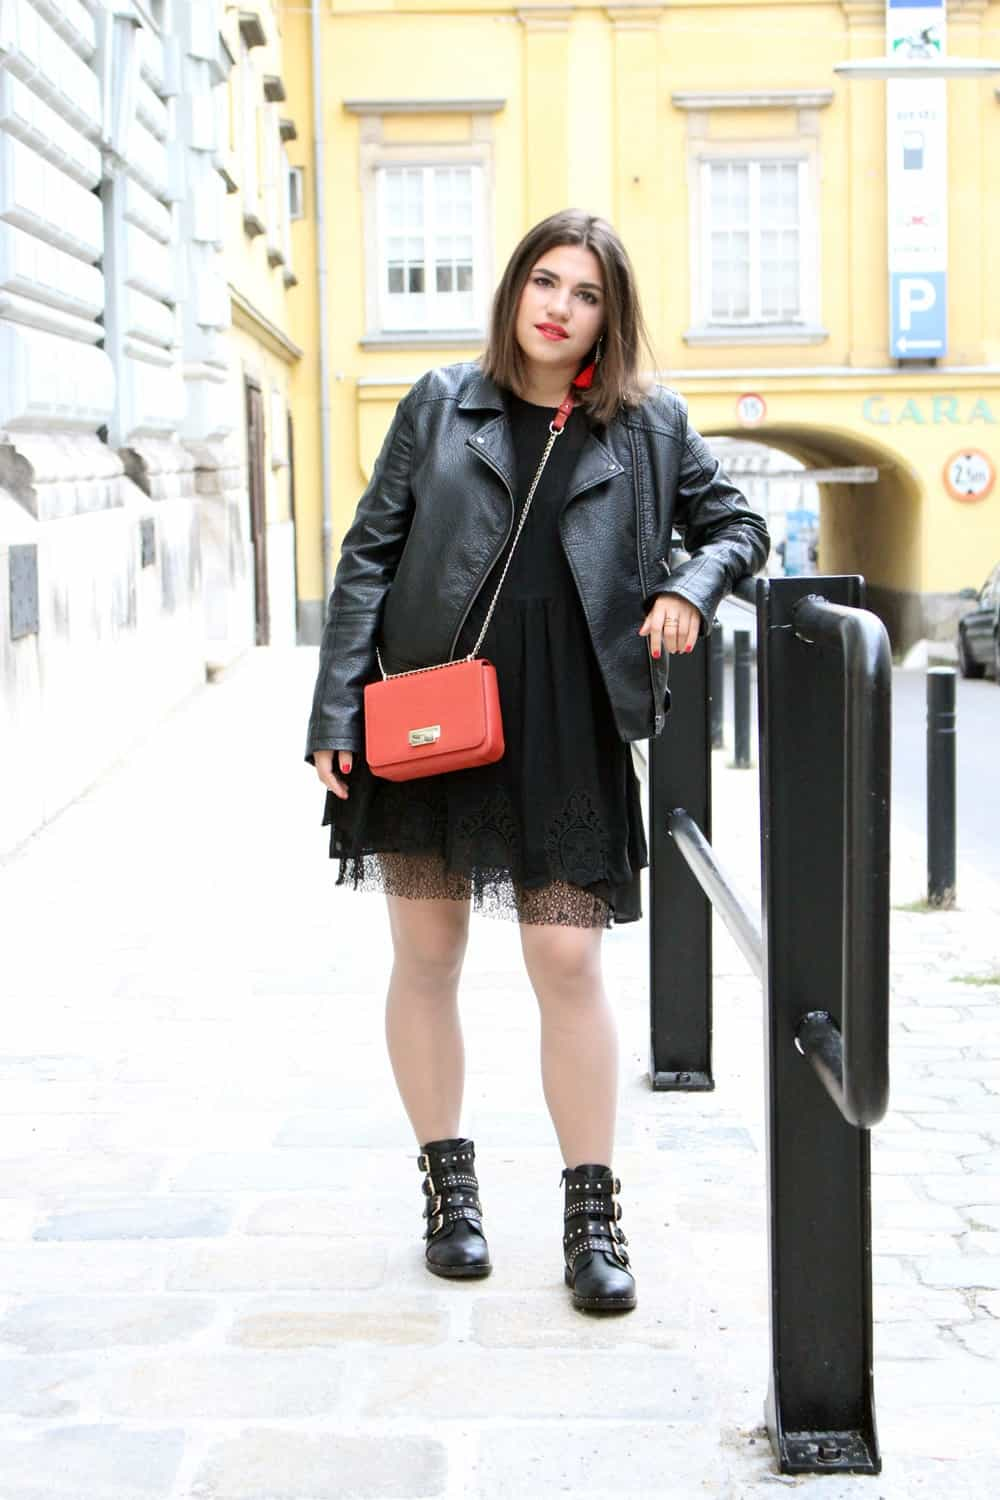 MQ Vienna Fashion Week Outfit: Black dress, Lederjacke, Boots und Lucy Bag